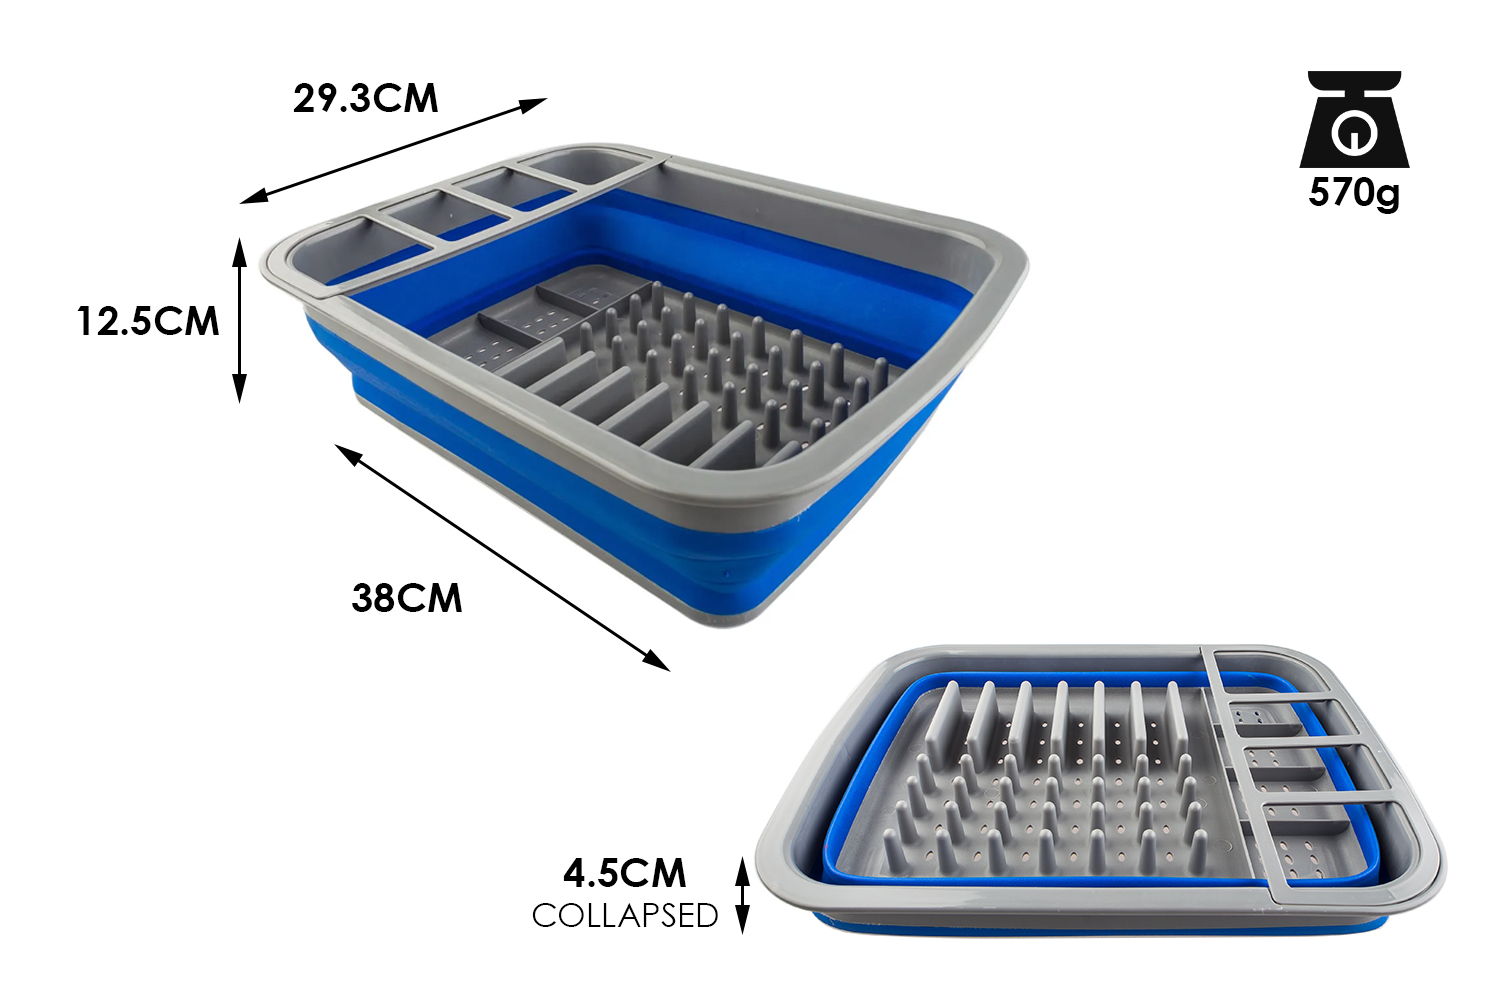 Adventure Kings Collapsible Dish Rack